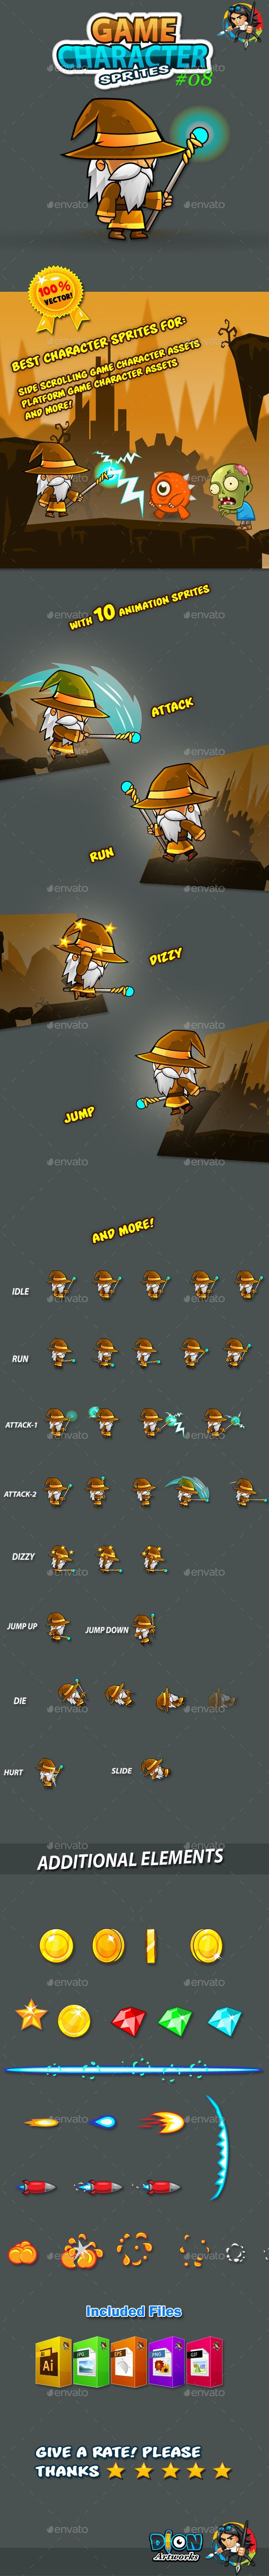 wizard game character sprites 08 - Game Design Ideas